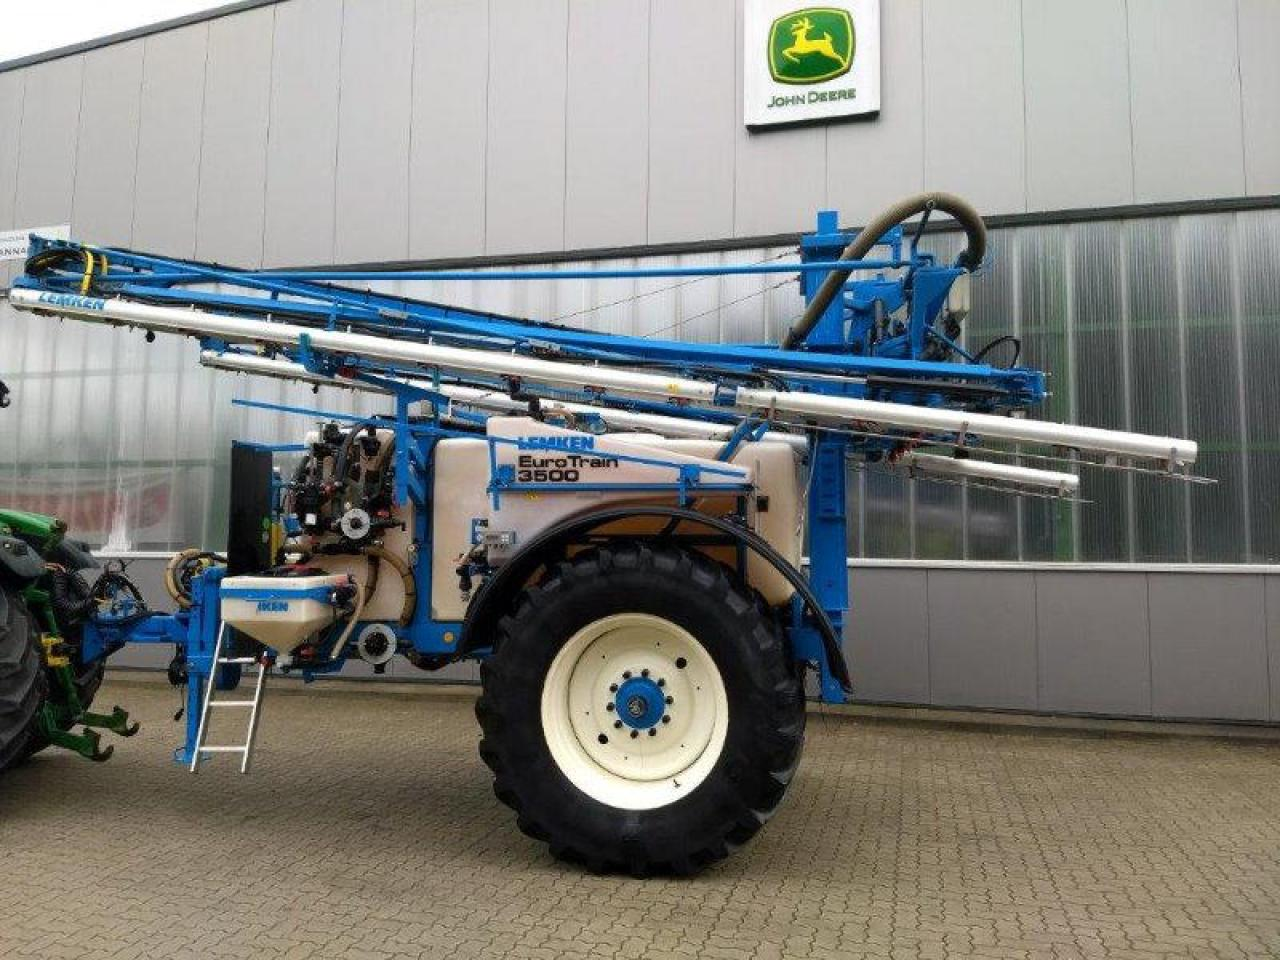 Lemken EURO TRAIN 3500